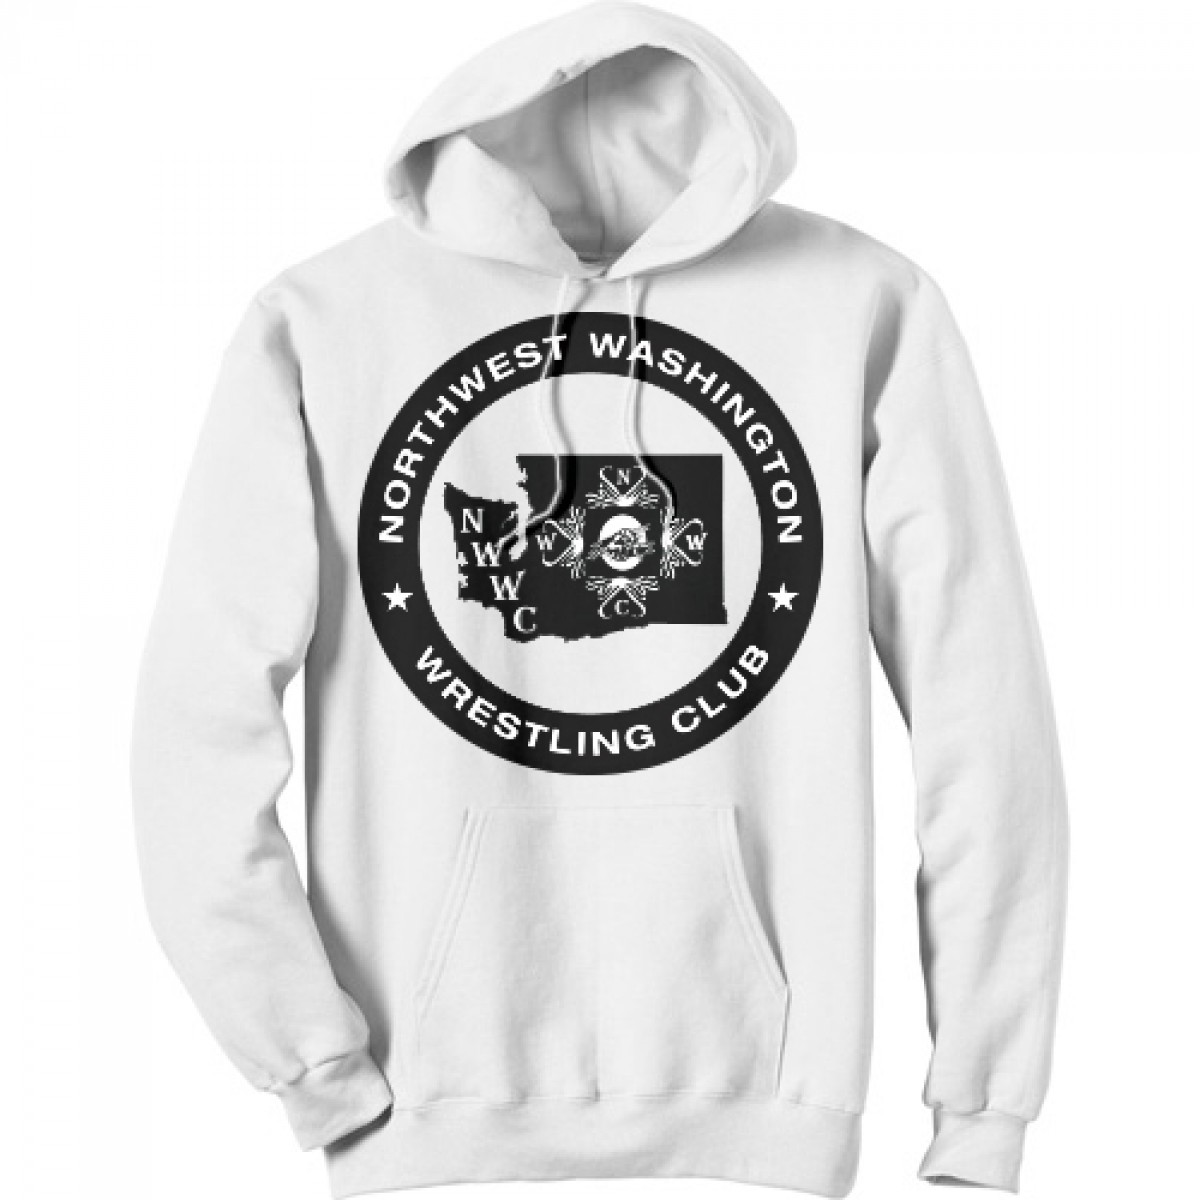 NWWC white hoodie with the main logo in black-White-M